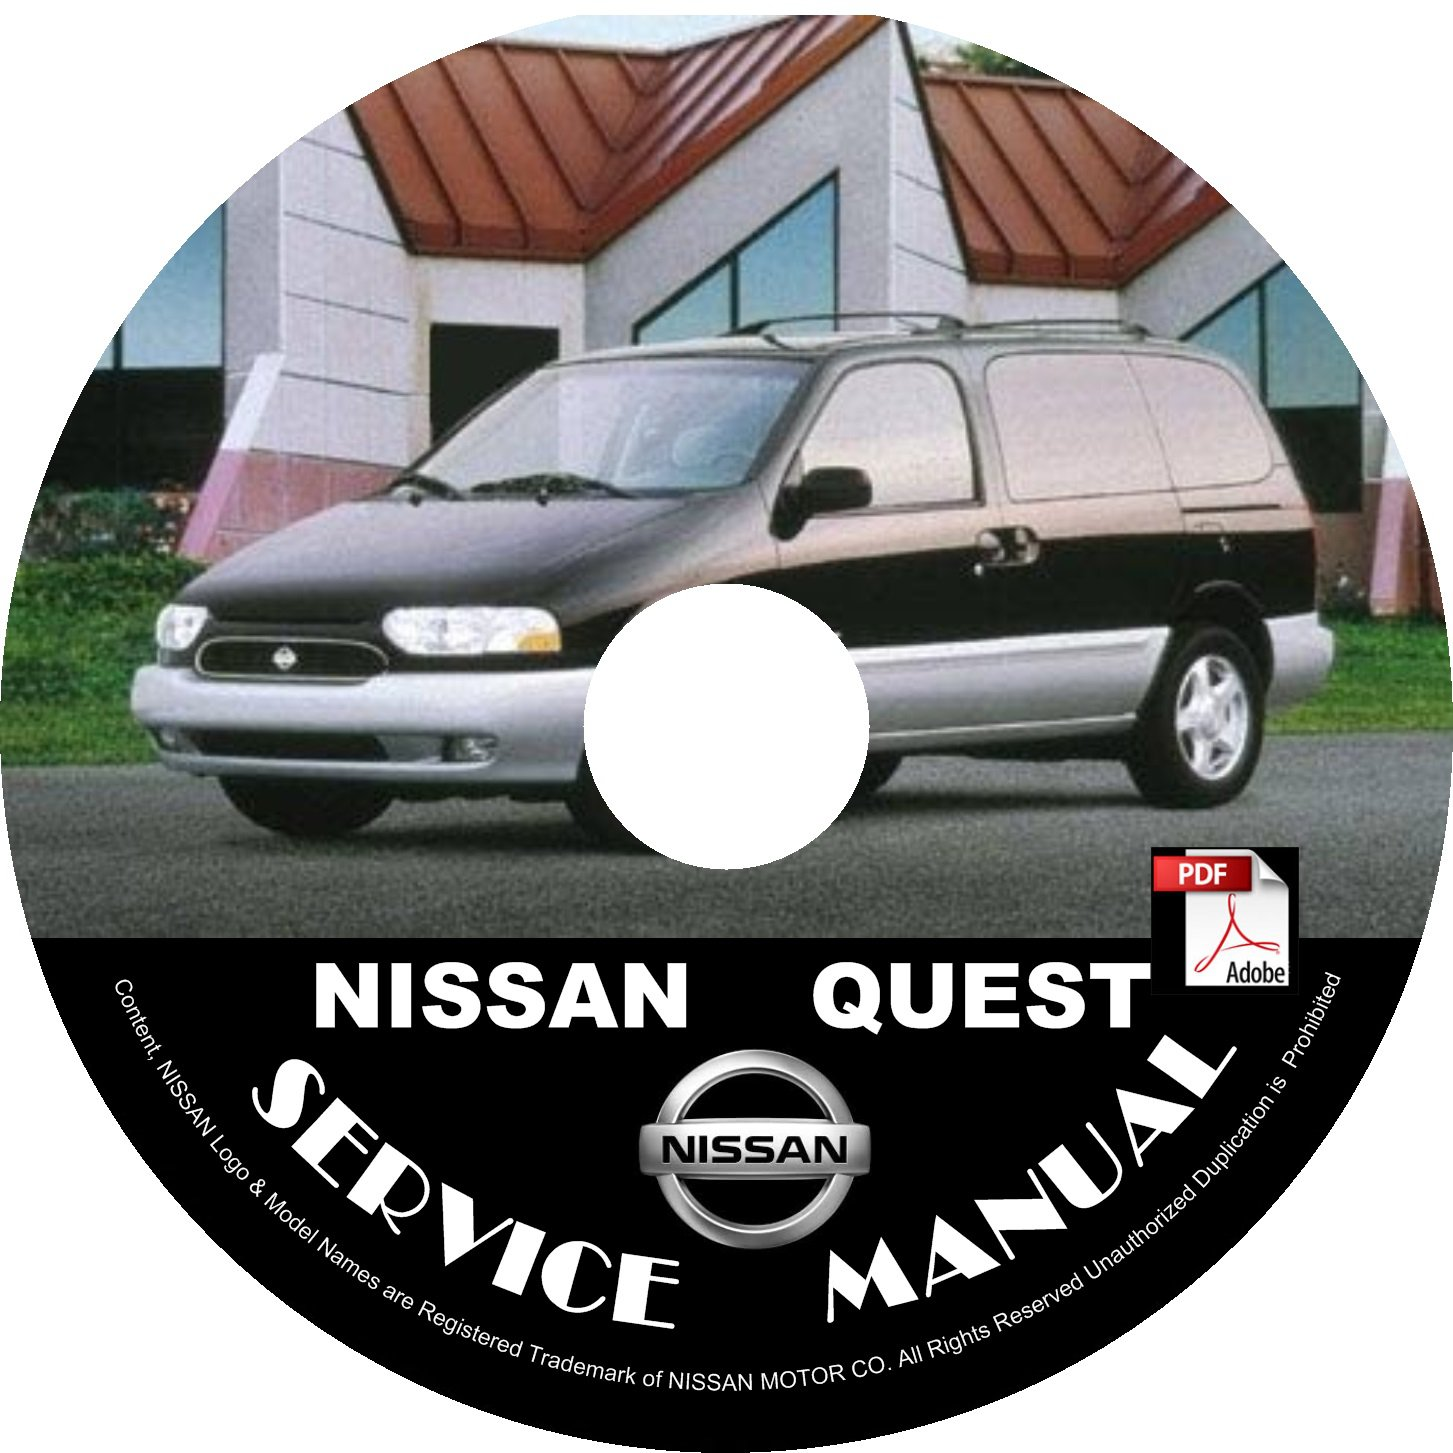 1999 Nissan Quest Minivan Factory Service Repair Shop Manual on CD Fix Rebuilt